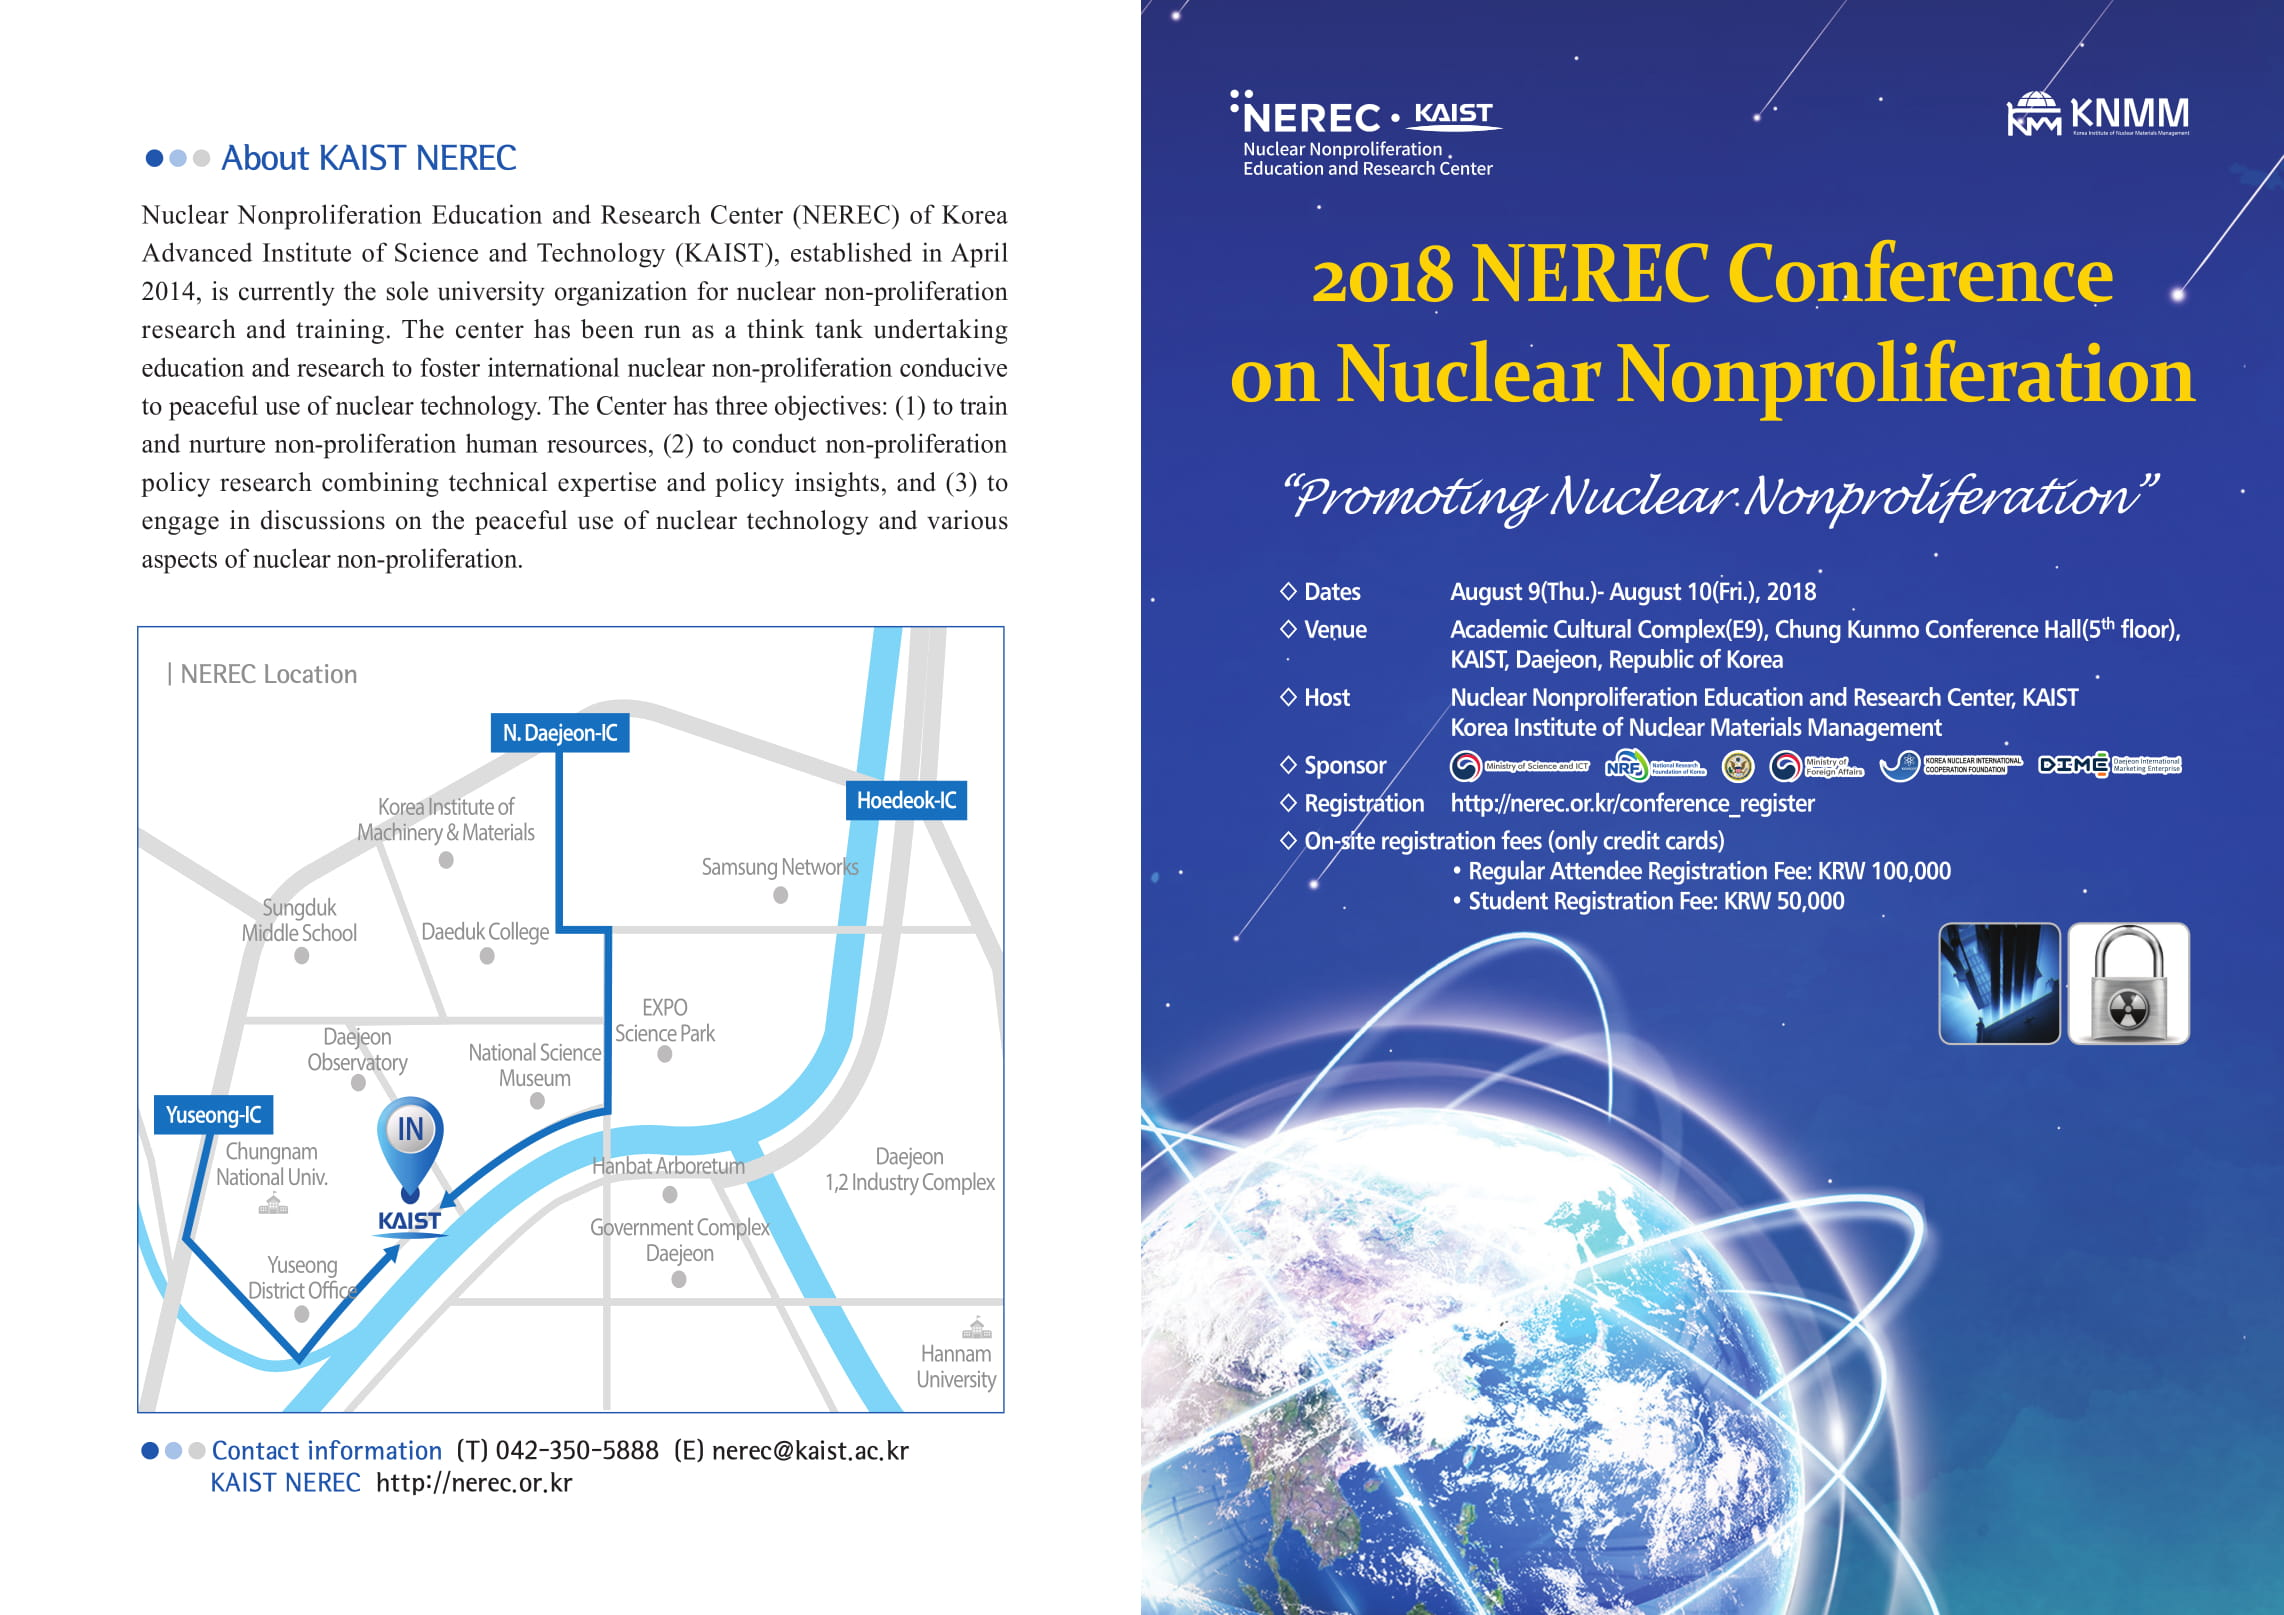 2018 NEREC Conference on Nuclear Nonproliferation_Invitation-1.jpg